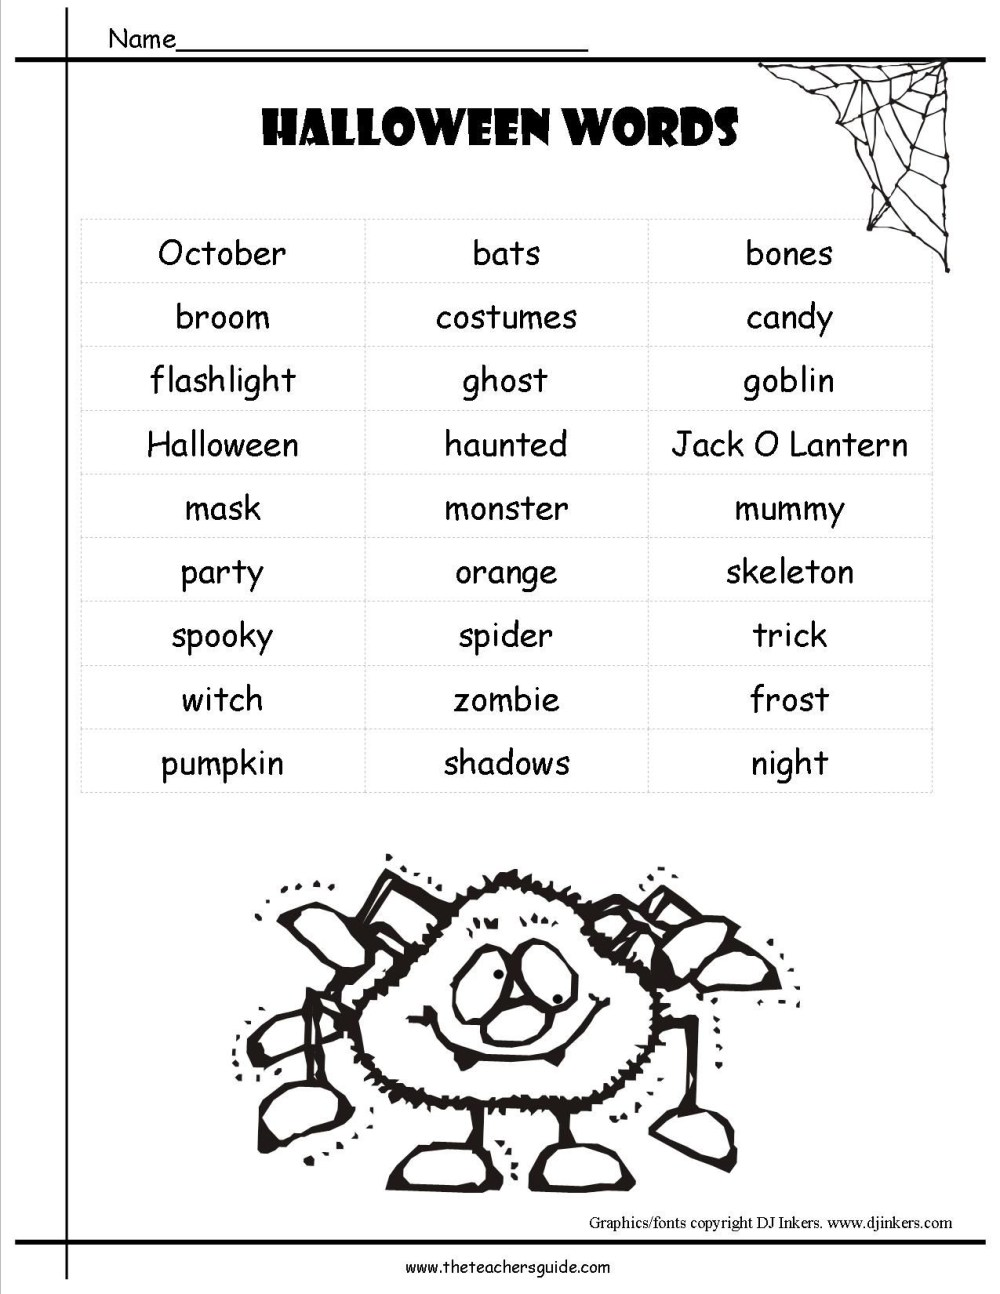 medium resolution of Halloween Adjective Worksheets 3rd Grade   Printable Worksheets and  Activities for Teachers